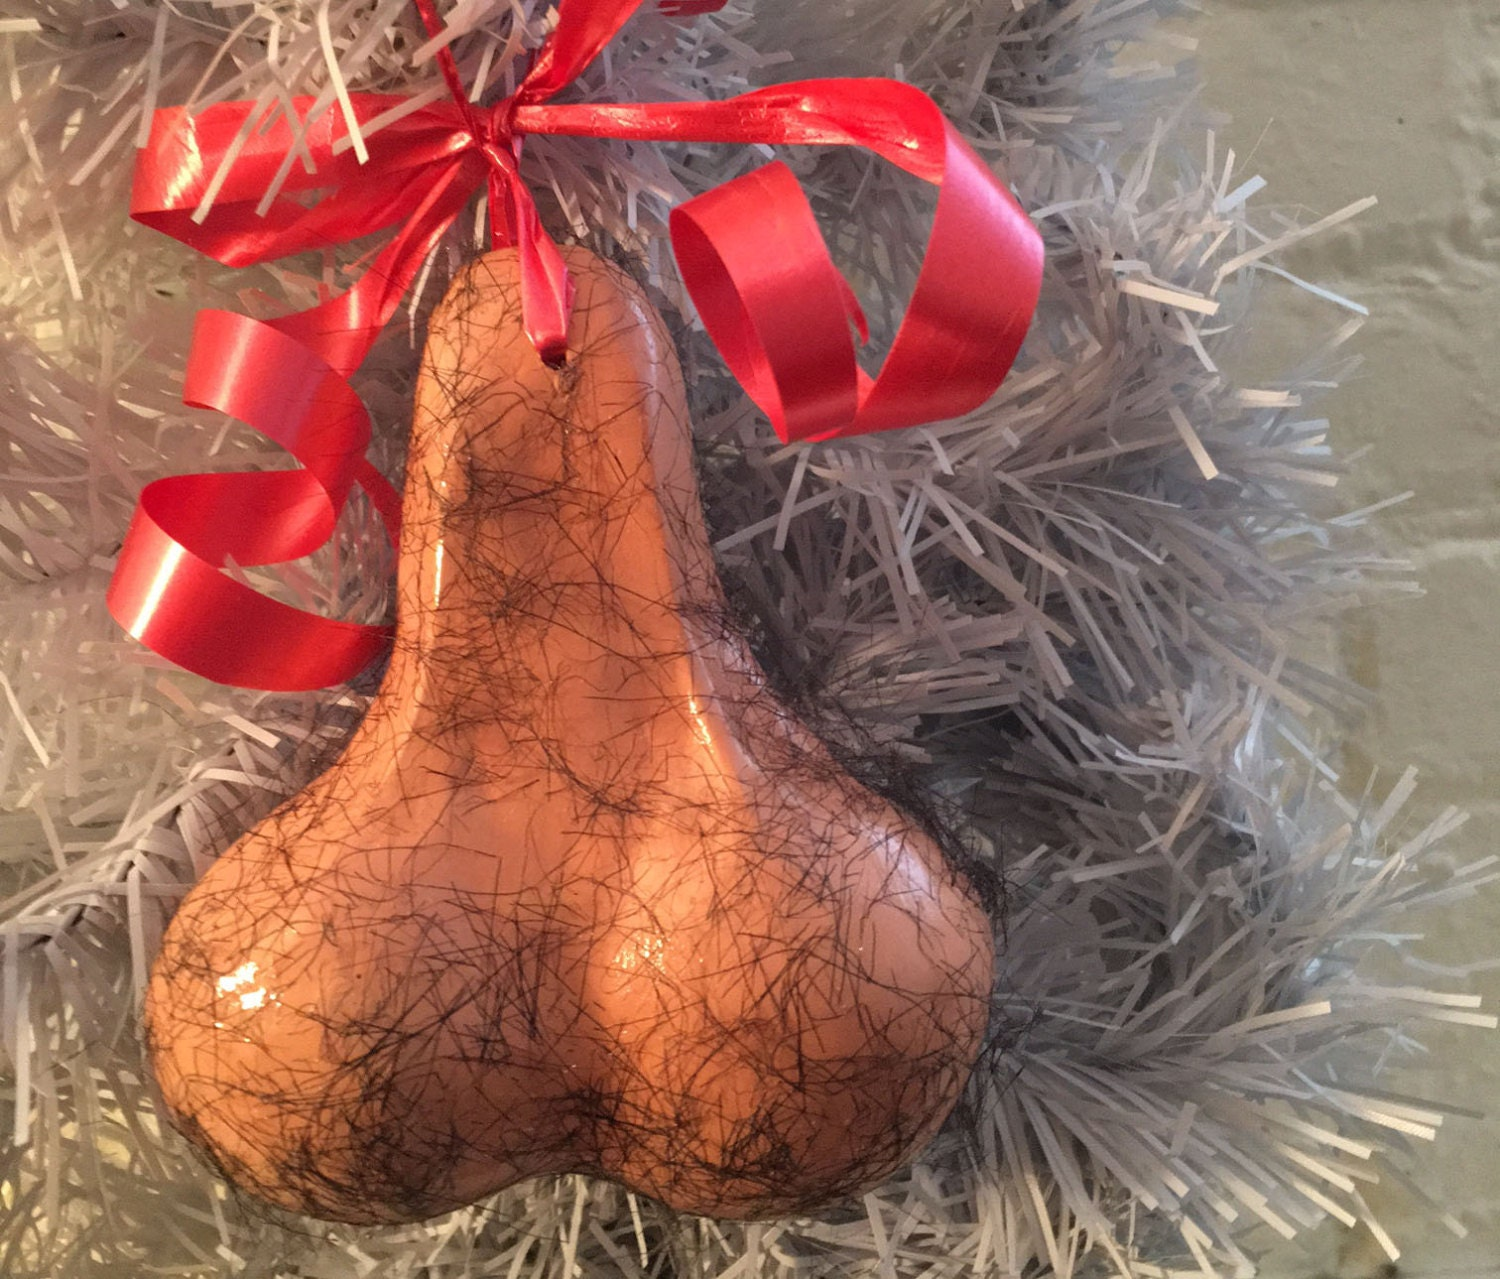 Hairy little balls decorative ornament